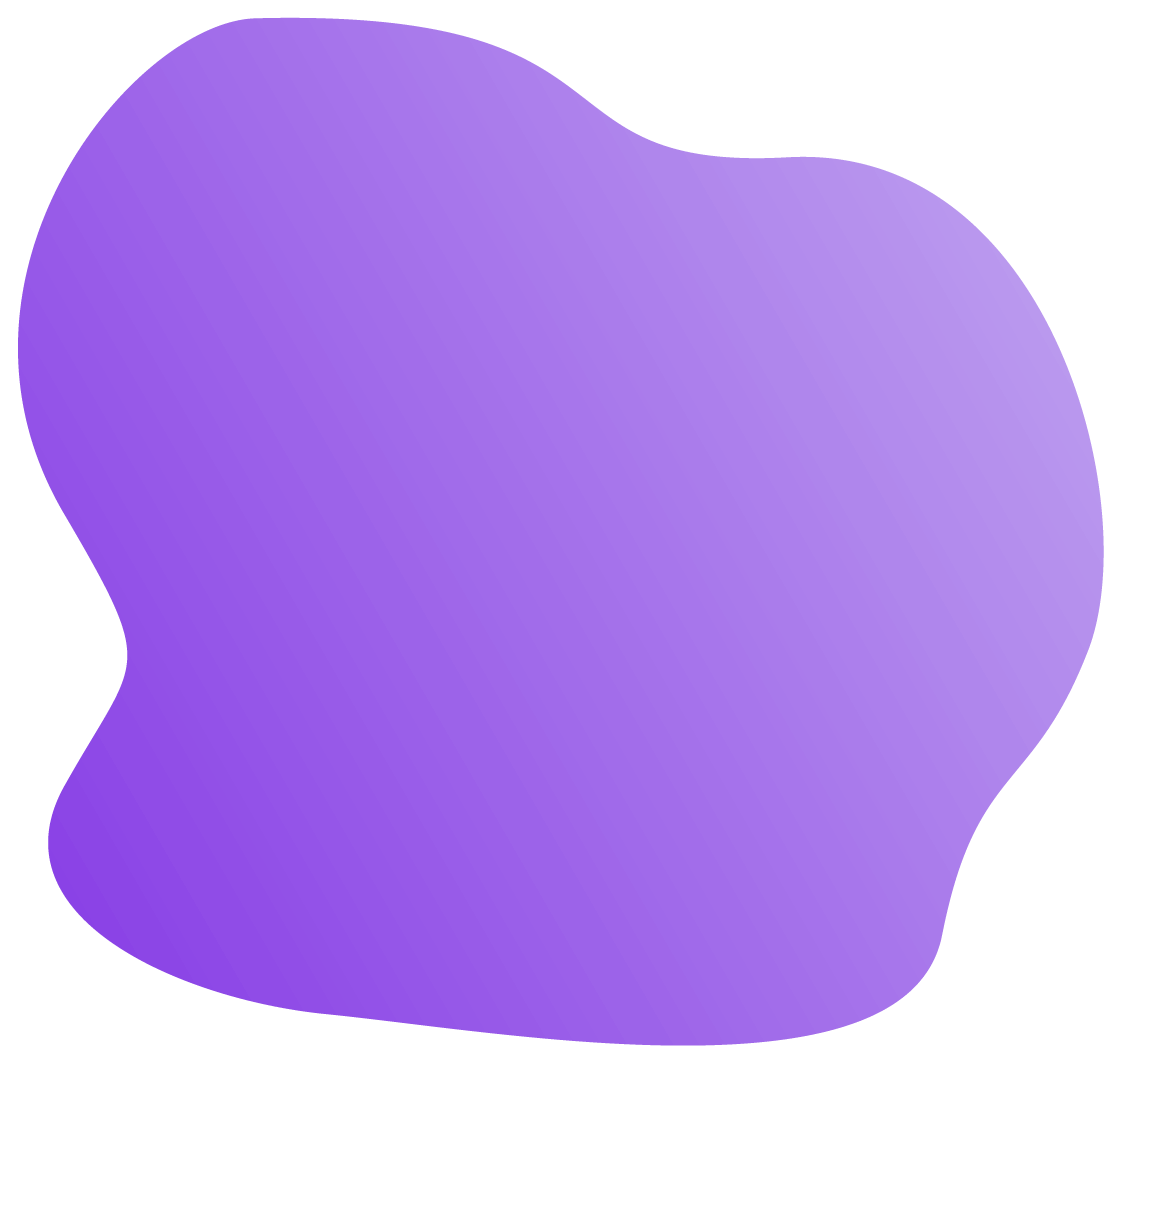 A purple blob image used in backgrounds